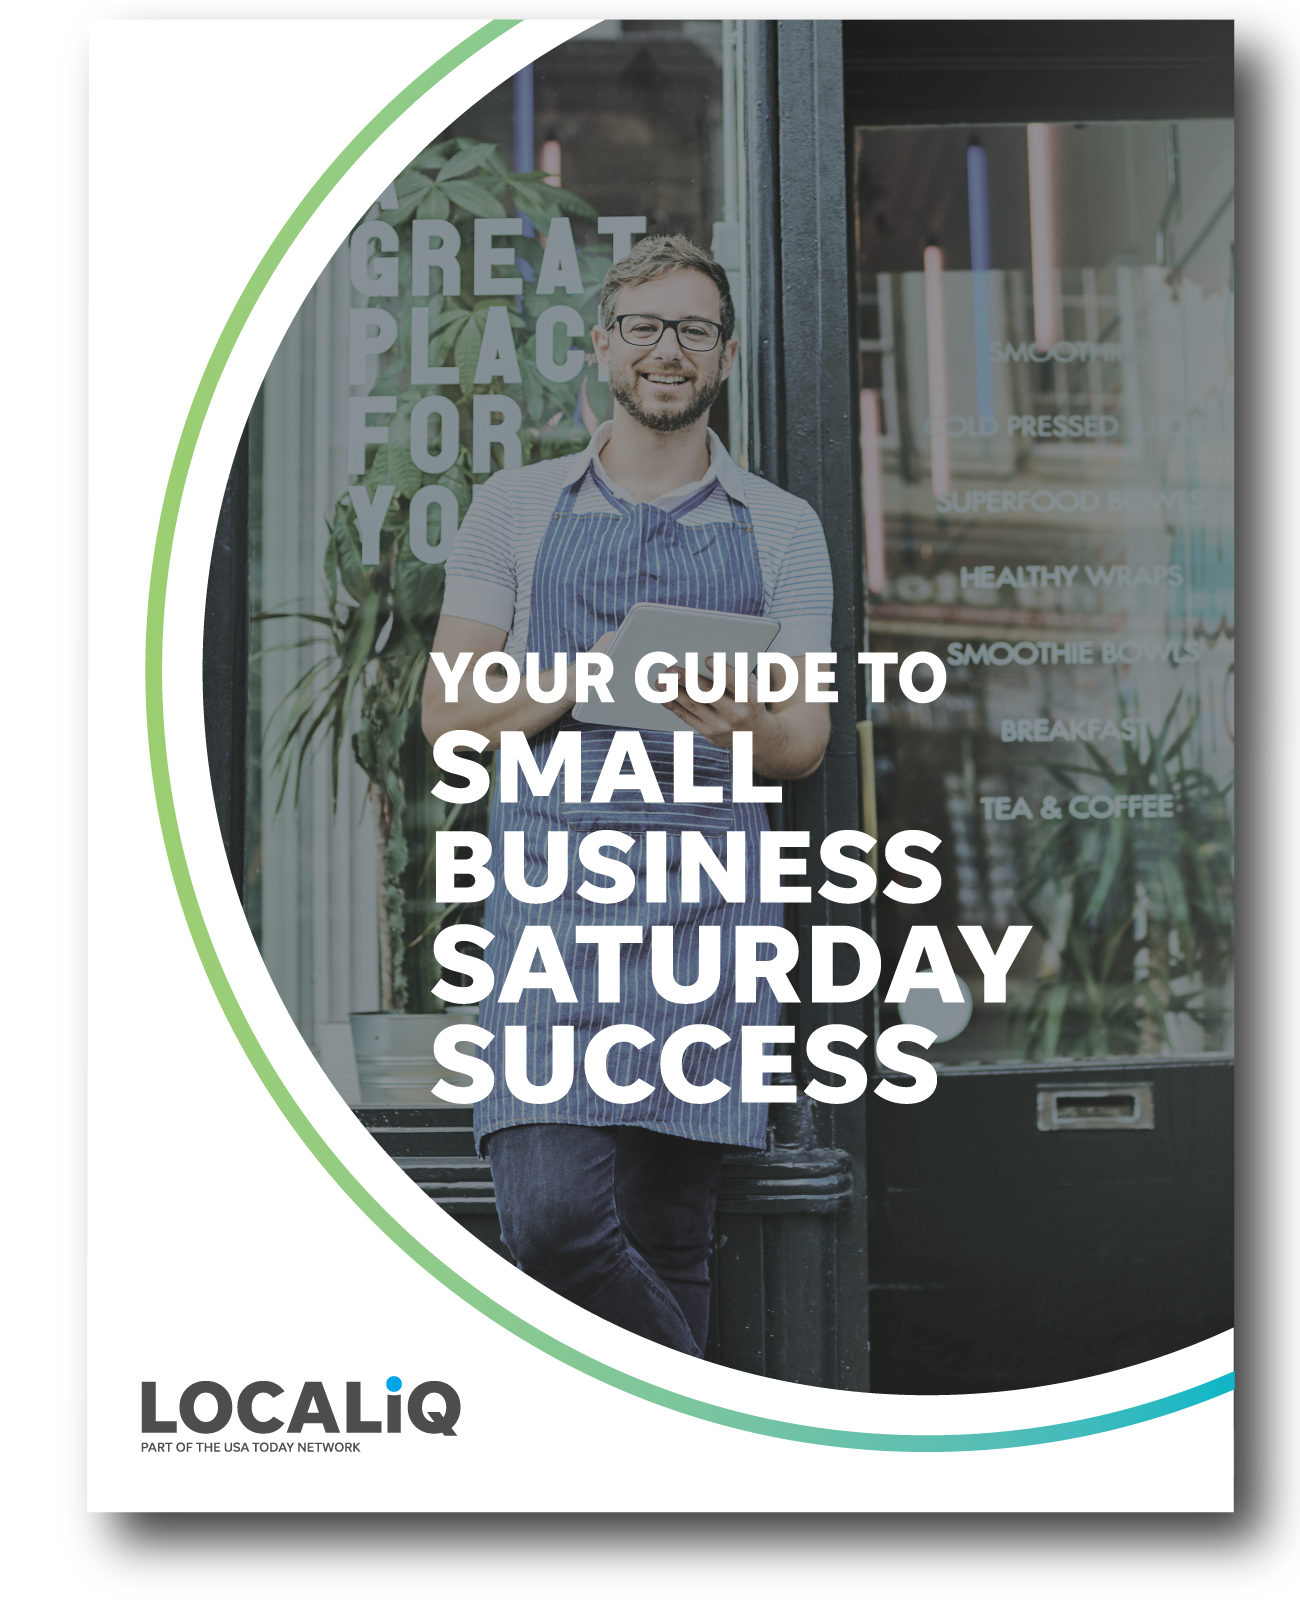 Your Guide to Small Business Saturday Success